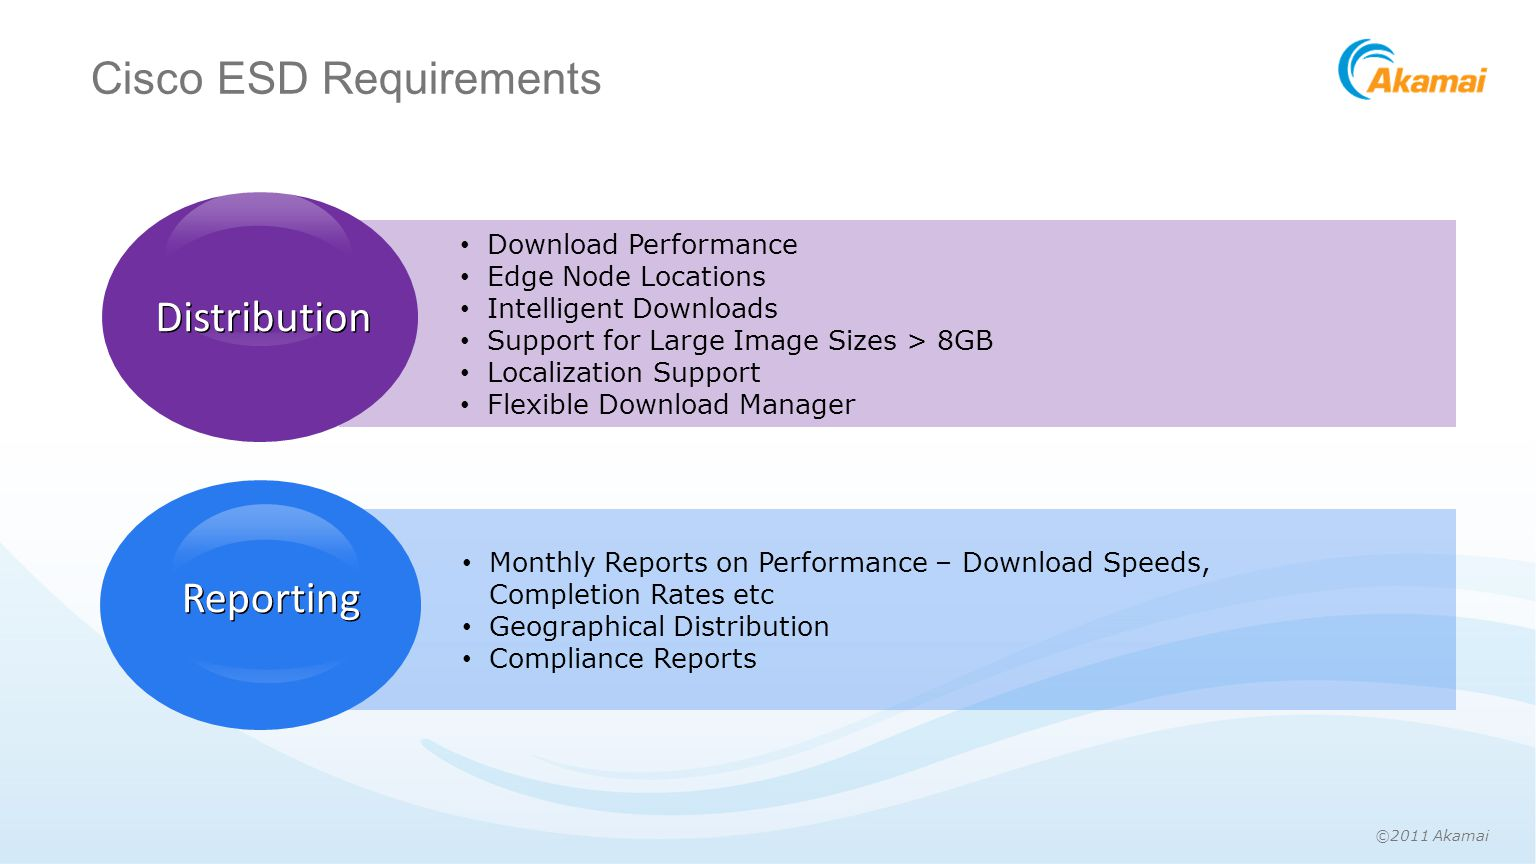 ©2011 Akamai Cisco ESD Requirements Distribution Reporting Monthly Reports on Performance – Download Speeds, Completion Rates etc Geographical Distribution Compliance Reports Download Performance Edge Node Locations Intelligent Downloads Support for Large Image Sizes > 8GB Localization Support Flexible Download Manager